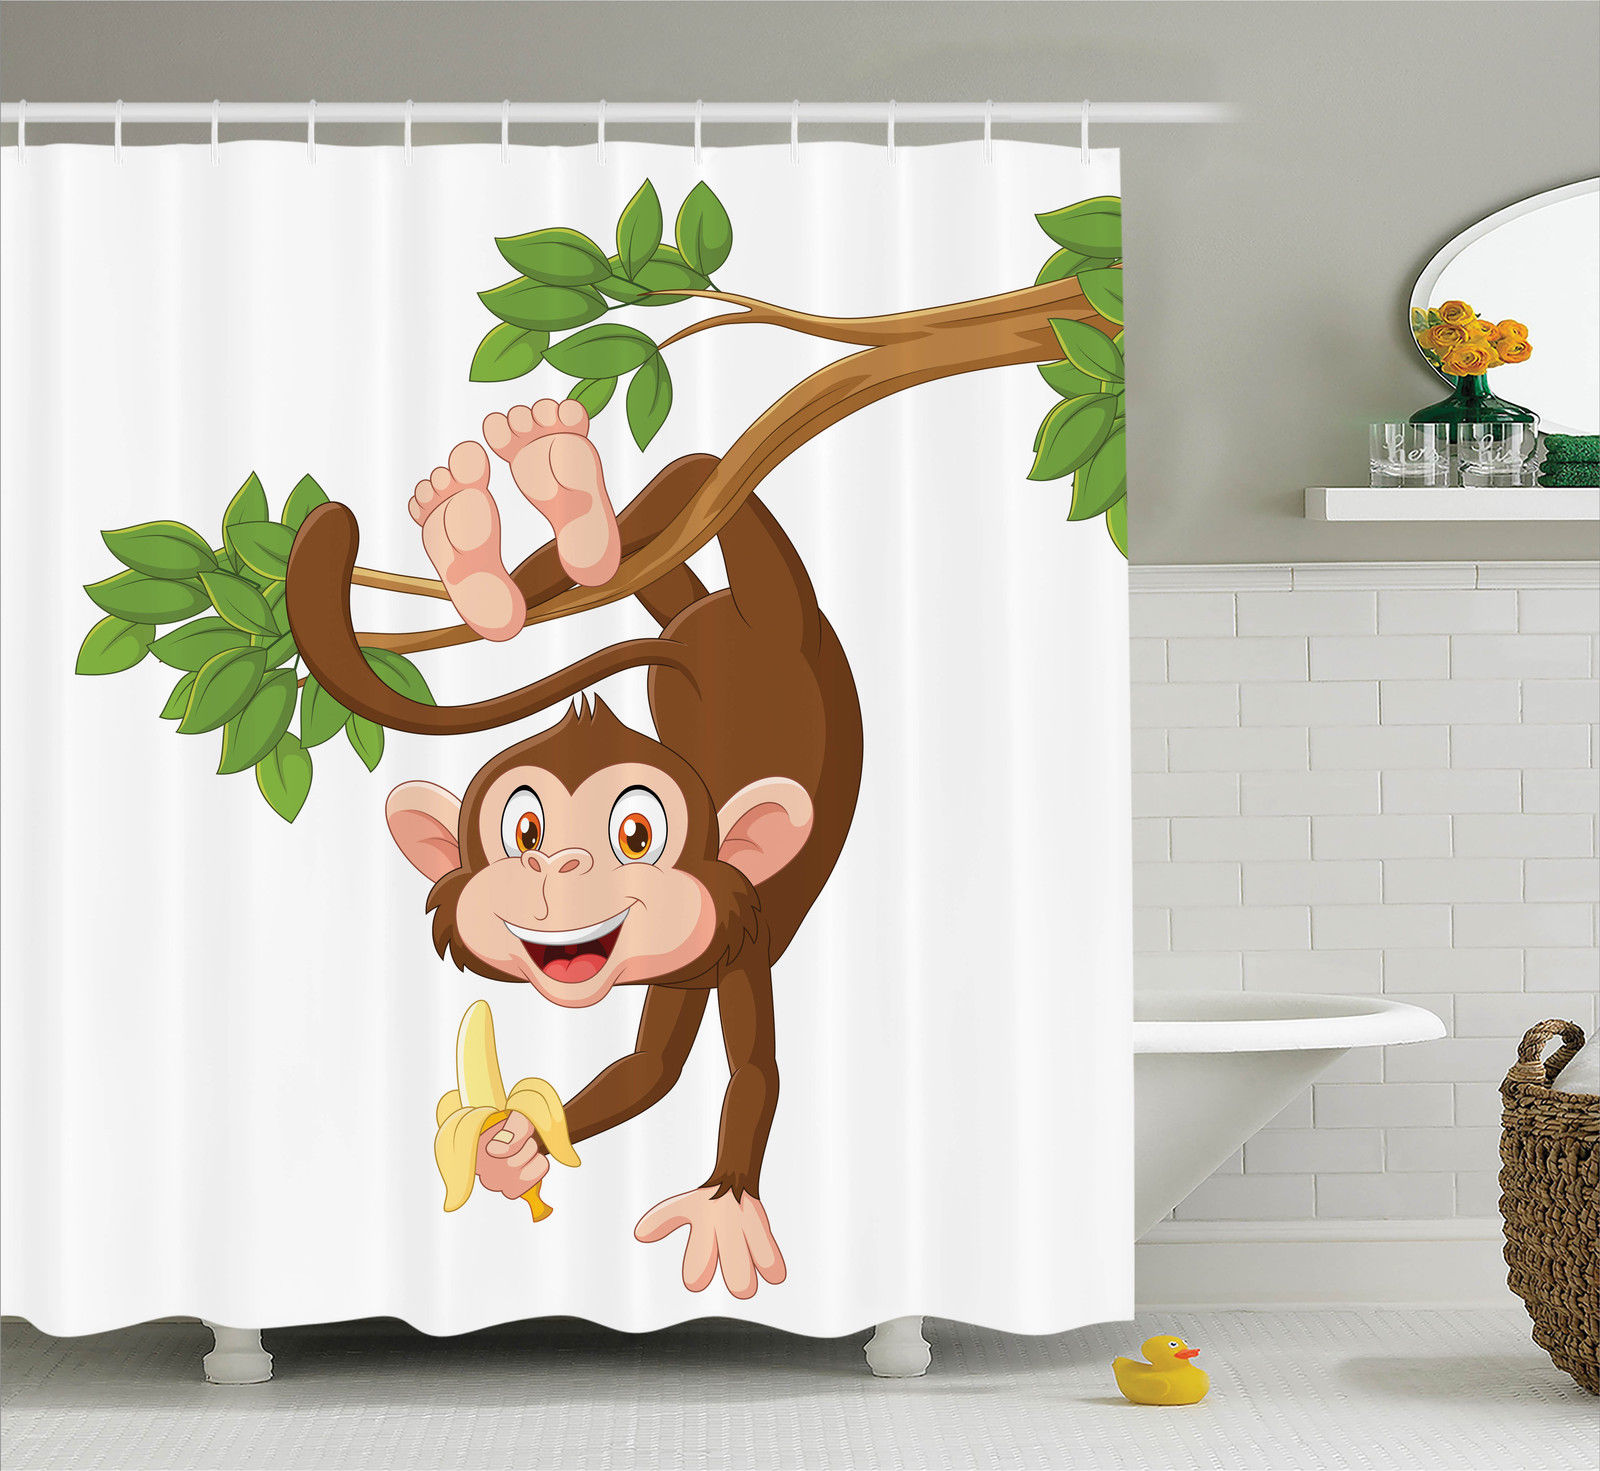 Cartoon Decor  Funny Monkey Hanging From Tree And Holding Banana Jungle Animals Theme Mascot Print, Bathroom Accessories, 69W X 84L Inches Extra Long, By Ambesonne